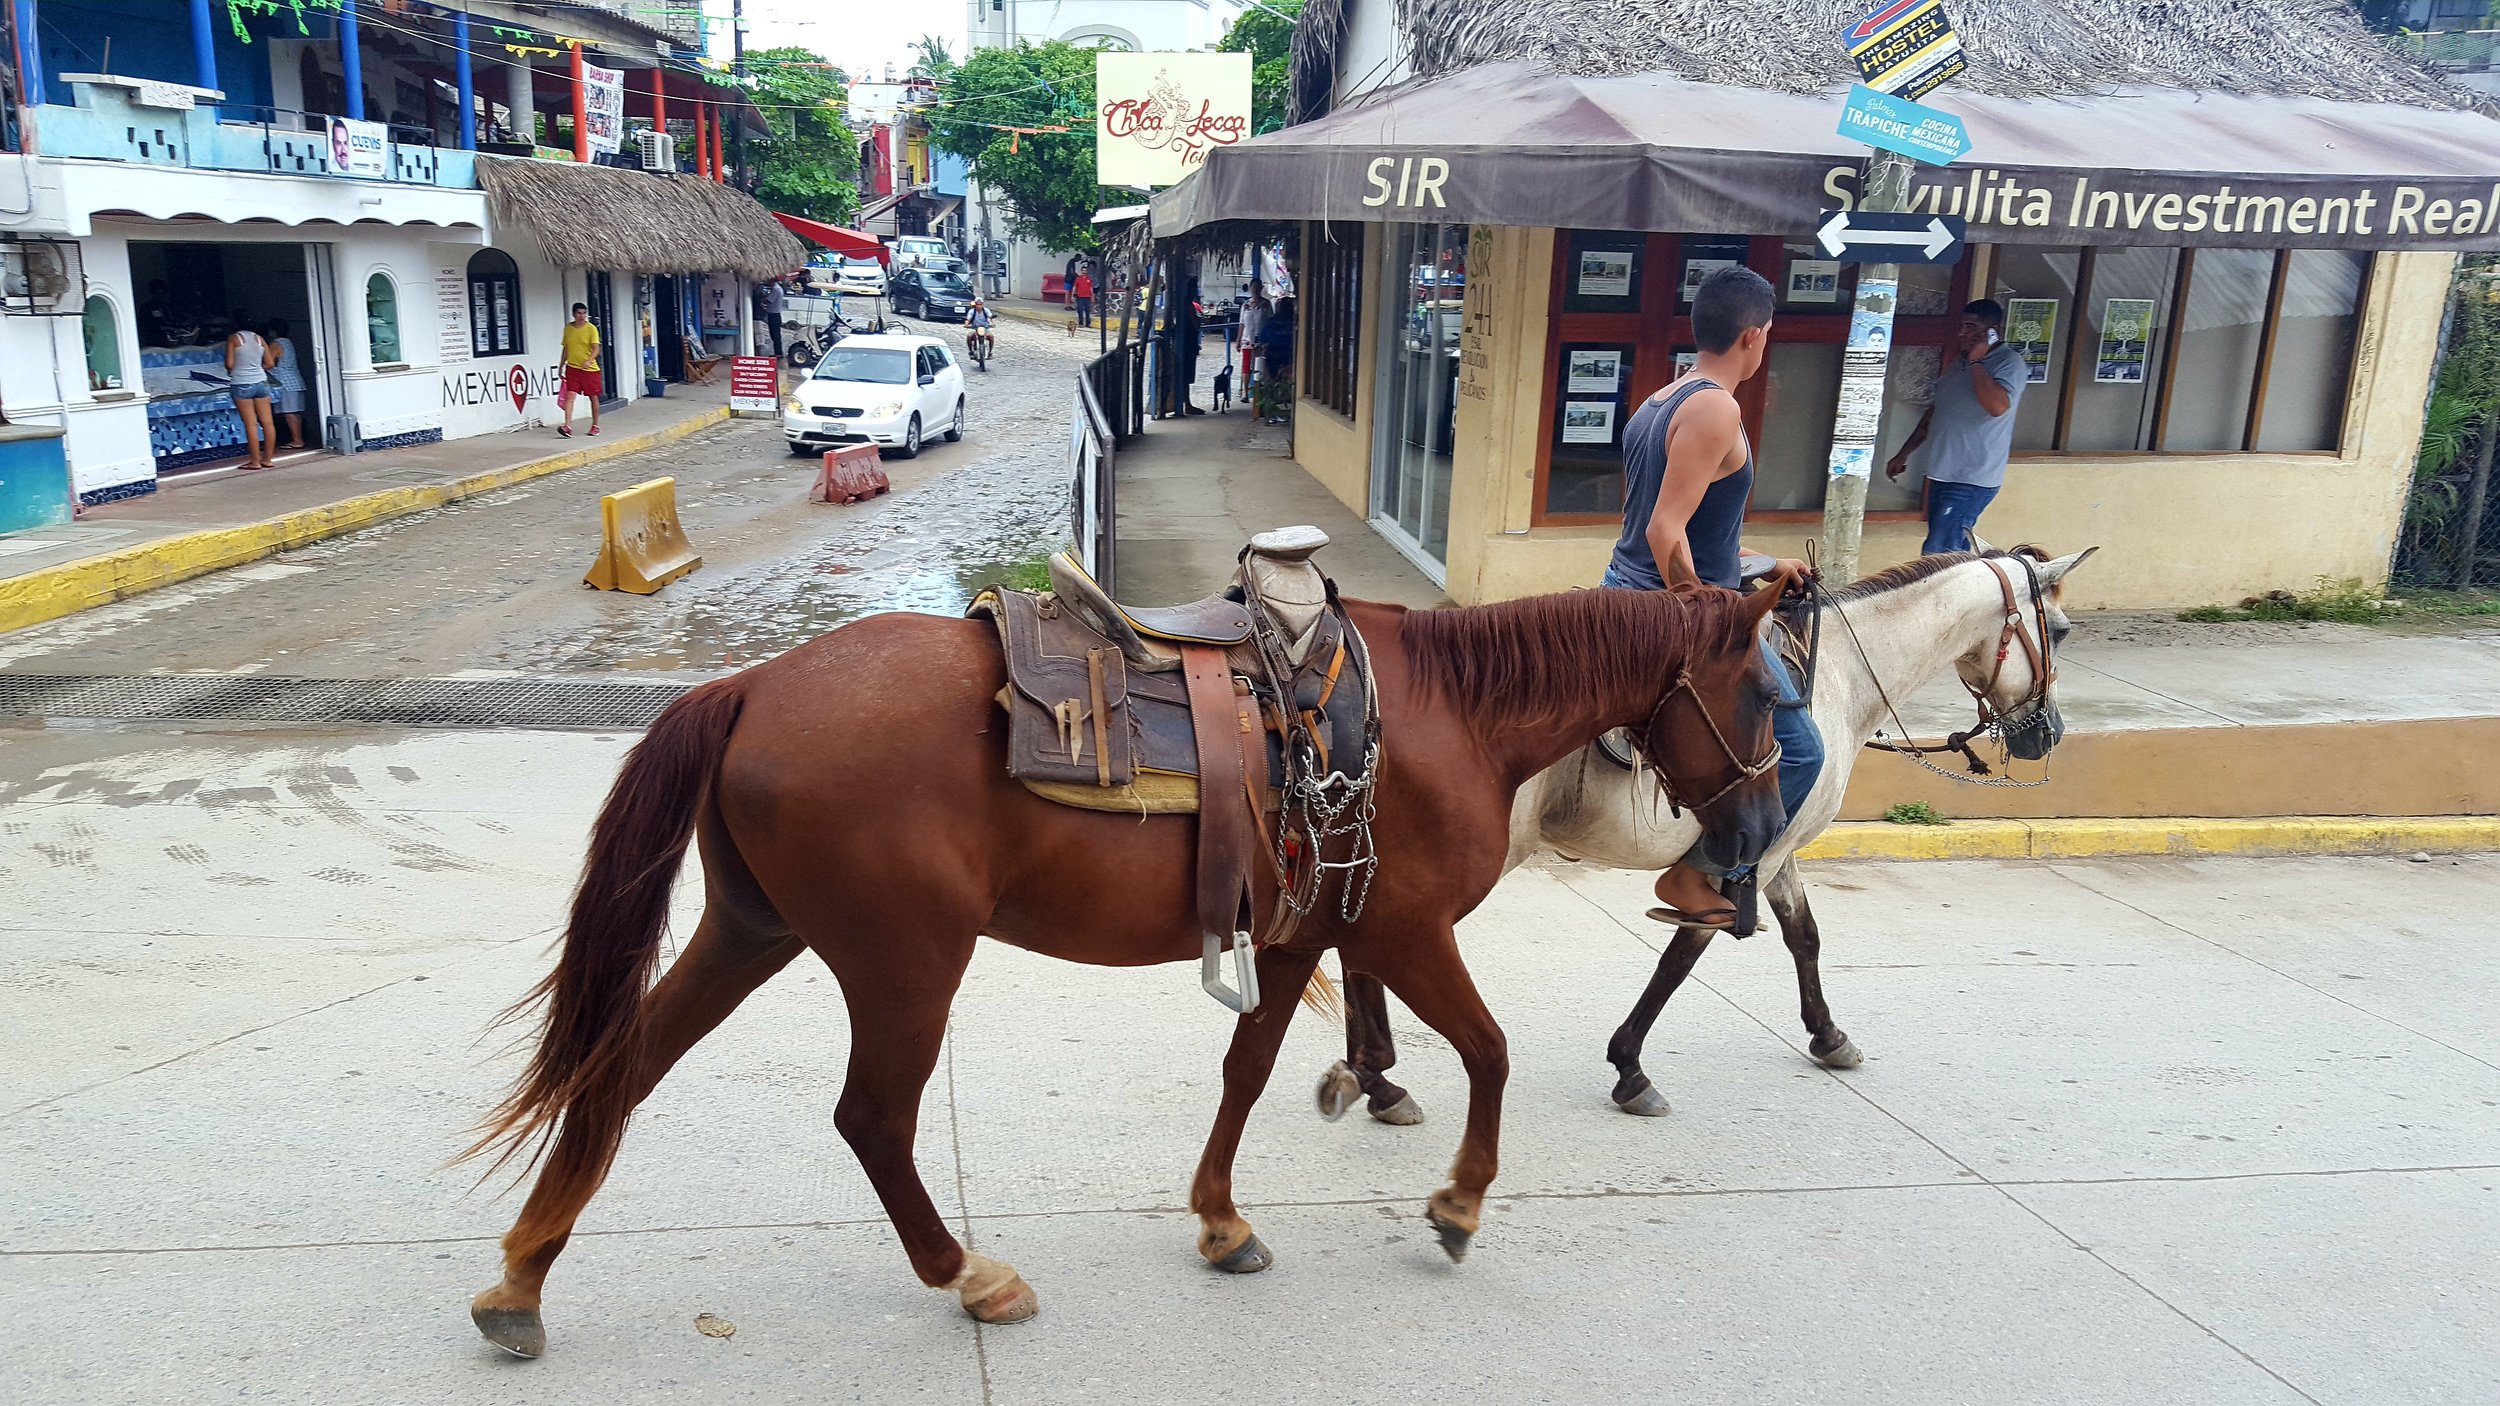 Waiting for horses to cross the road in the slower-paced town of Sayulita